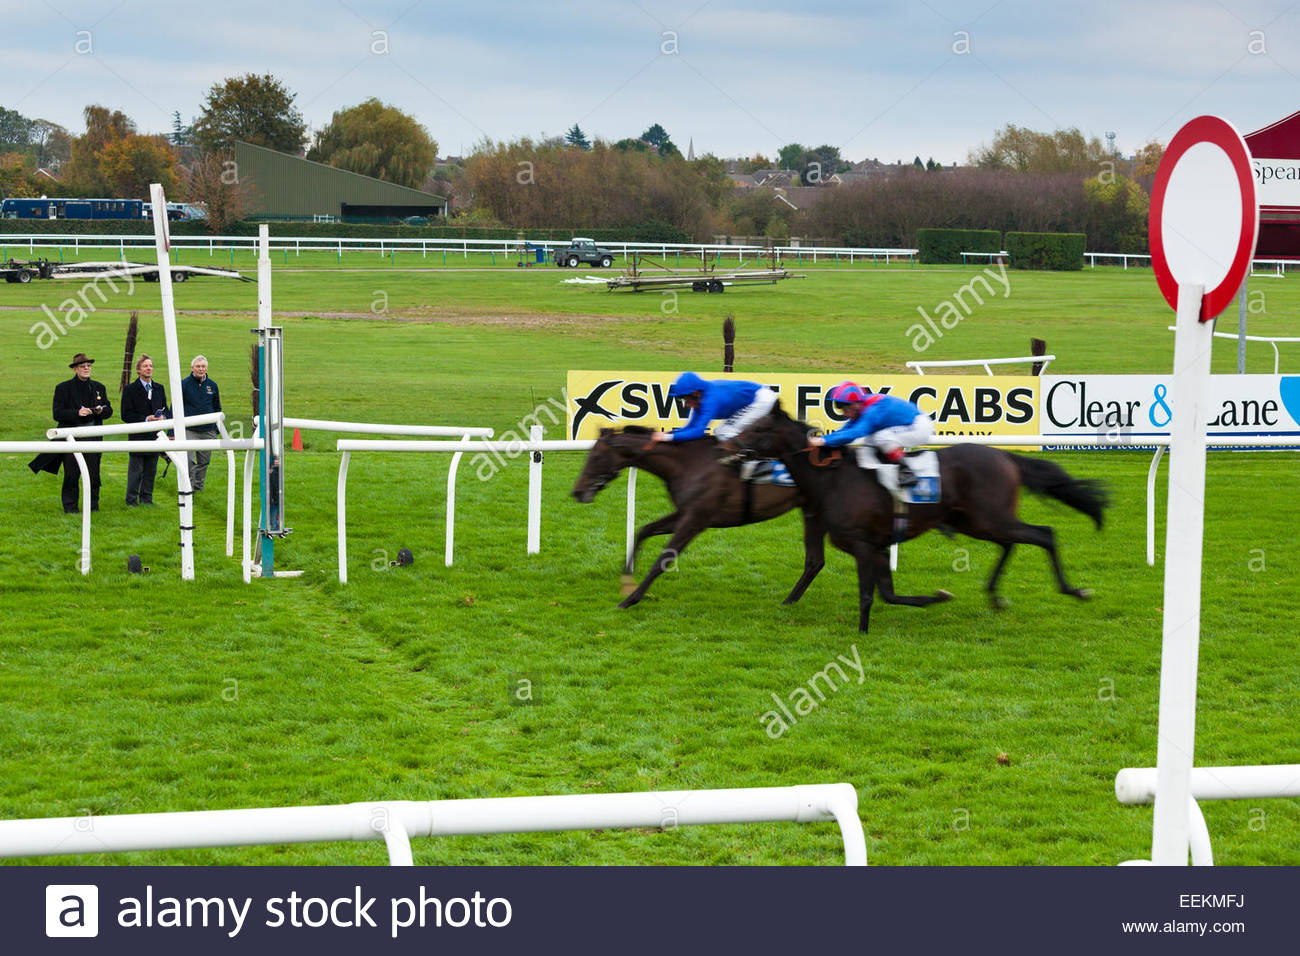 Tight finish as two horses and jockeys approach the finishing line at Leicester racecourse. 27 October 2014 Stock Photo